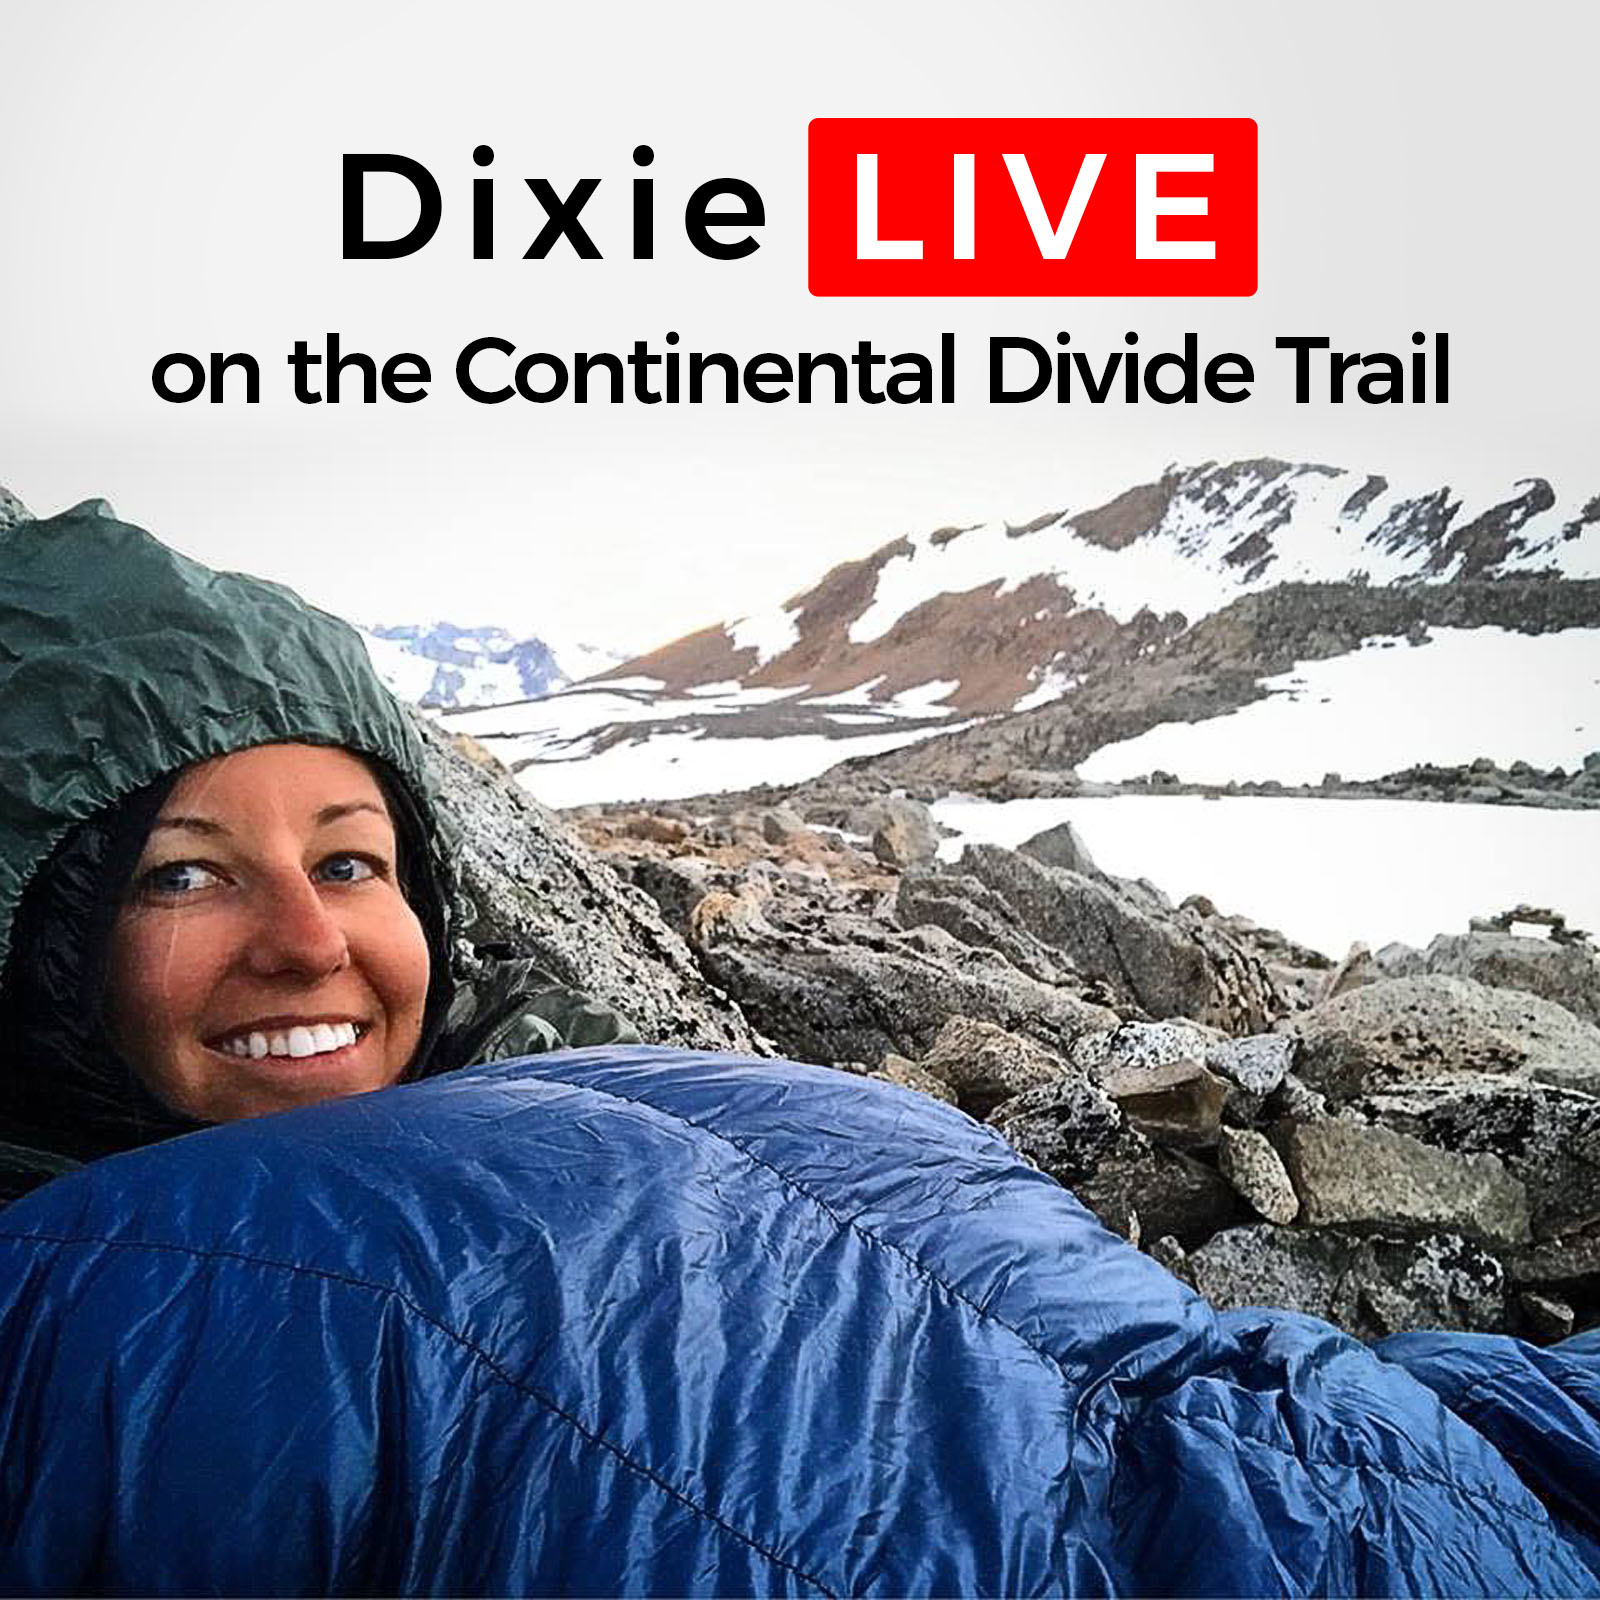 Dixie LIVE on the Continental Divide Trail show art